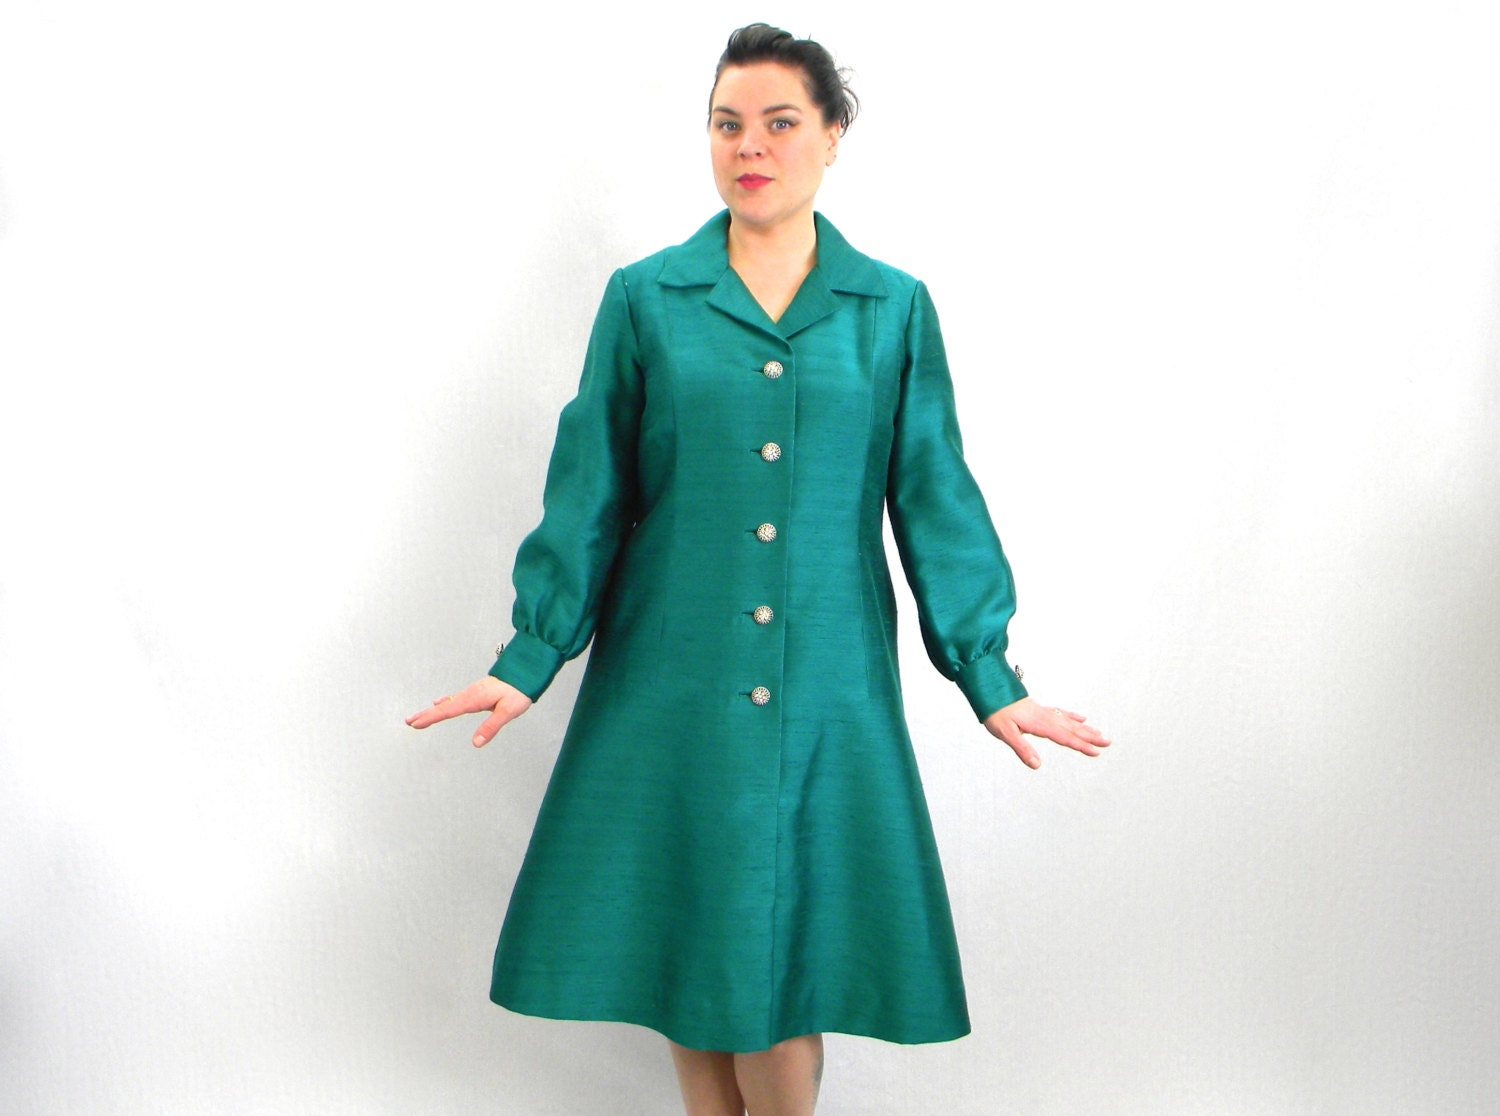 Vintage 60s emerald green shirt dress long by Emerald green mens dress shirt